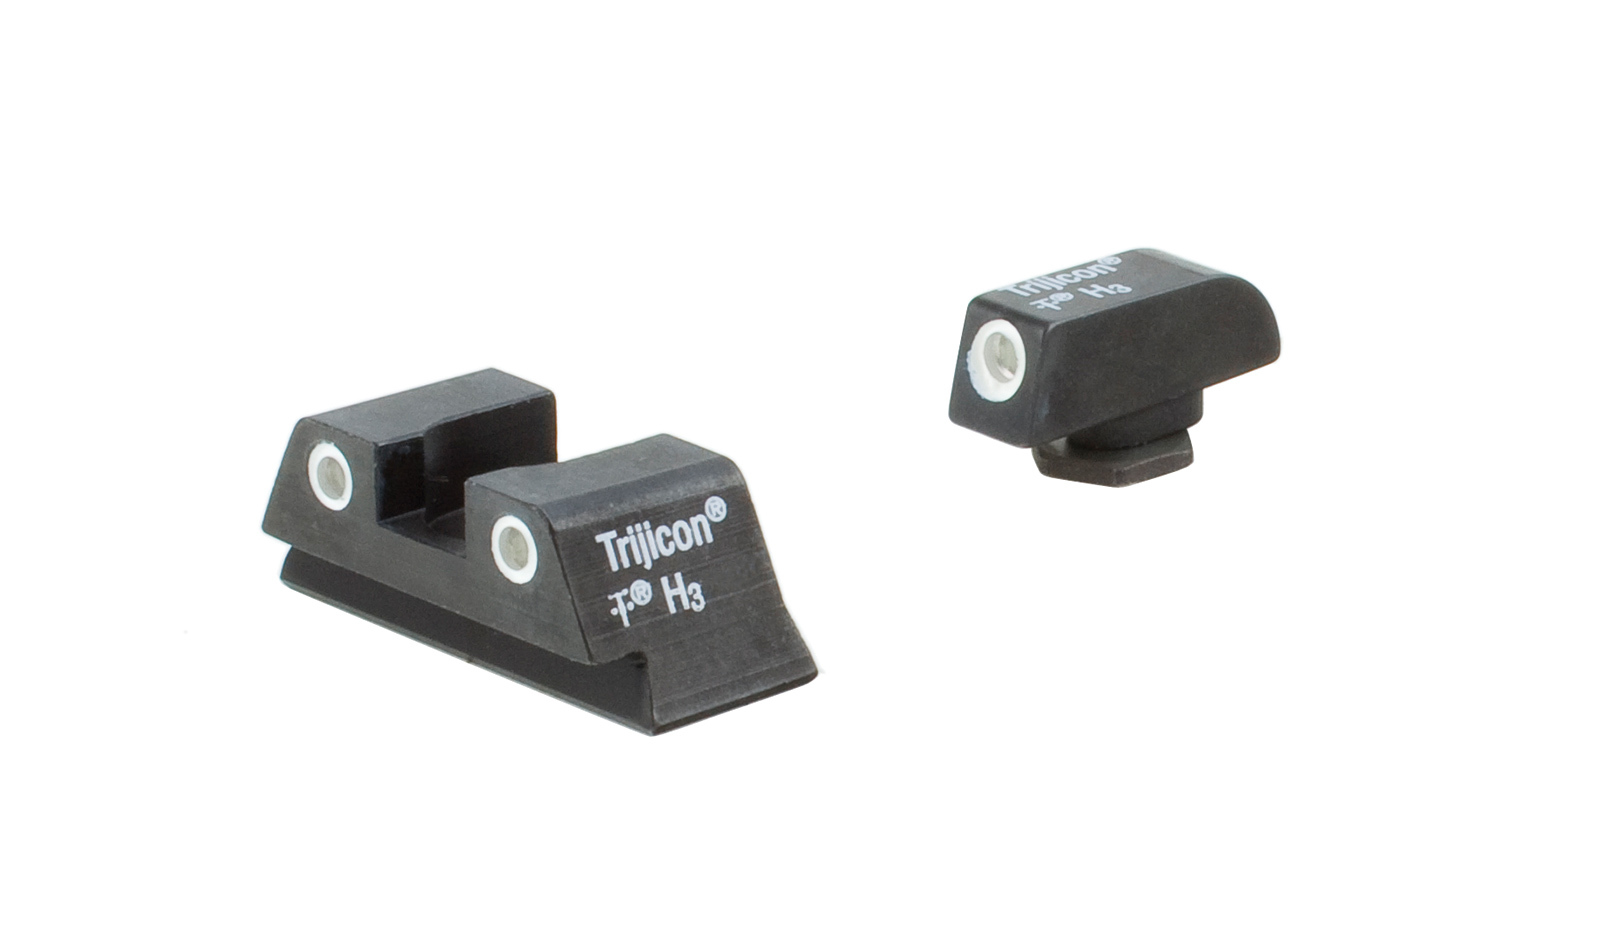 Trijicon Bright & Tough™ Night Sights - Glock Small Frames